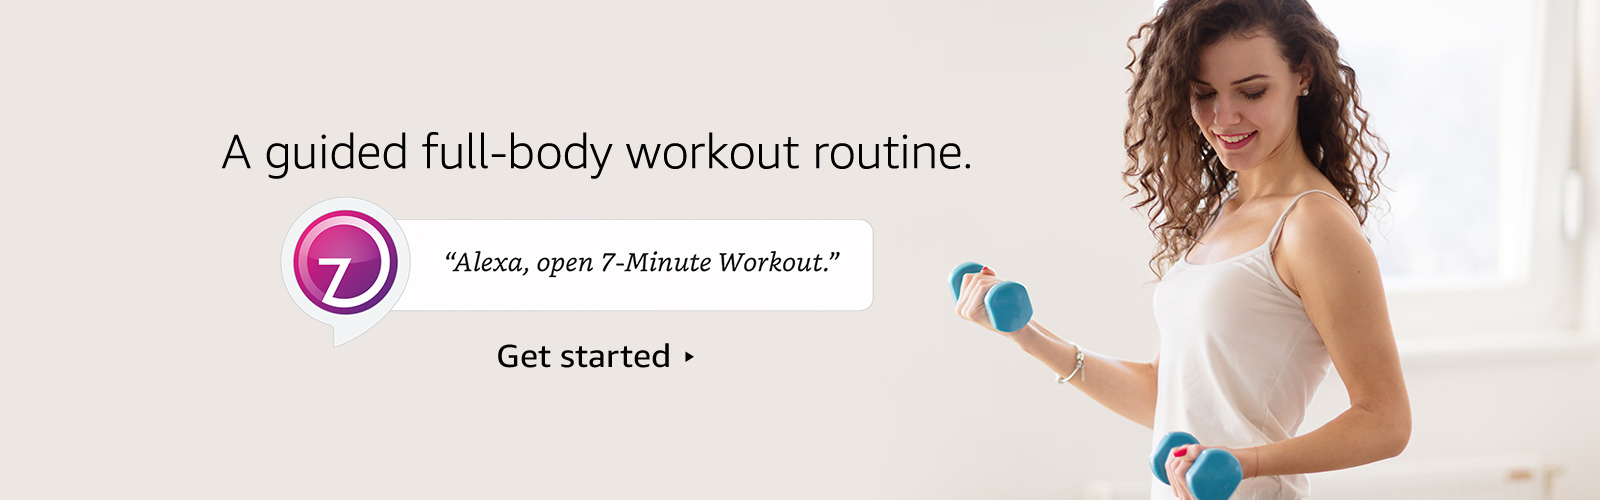 "A guided full-body workout routine. ""Alexa, open 7-minute Workout."""